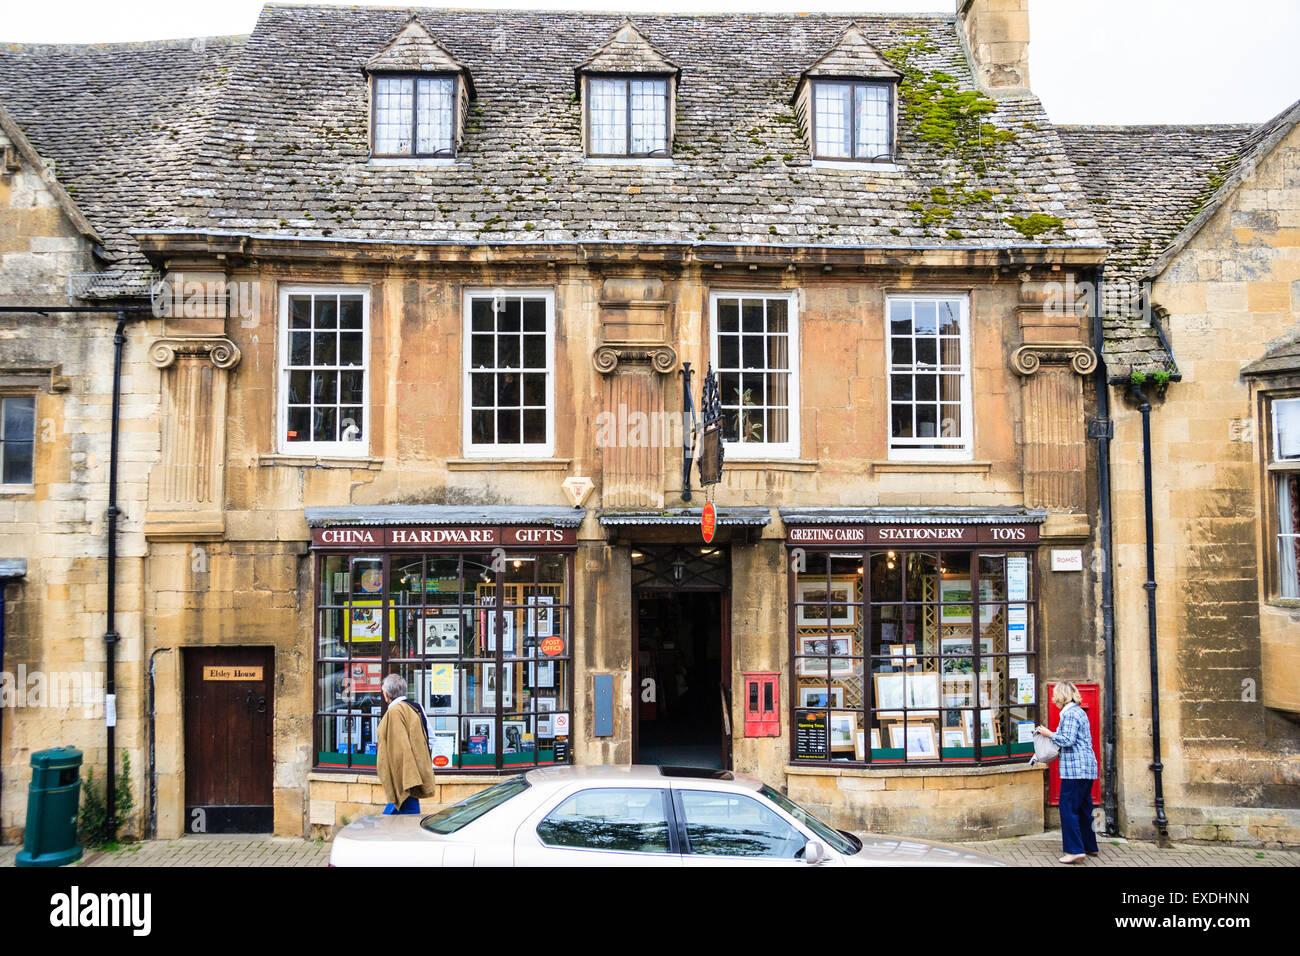 Cotswold Town Chipping Campden View Along High Street Showing